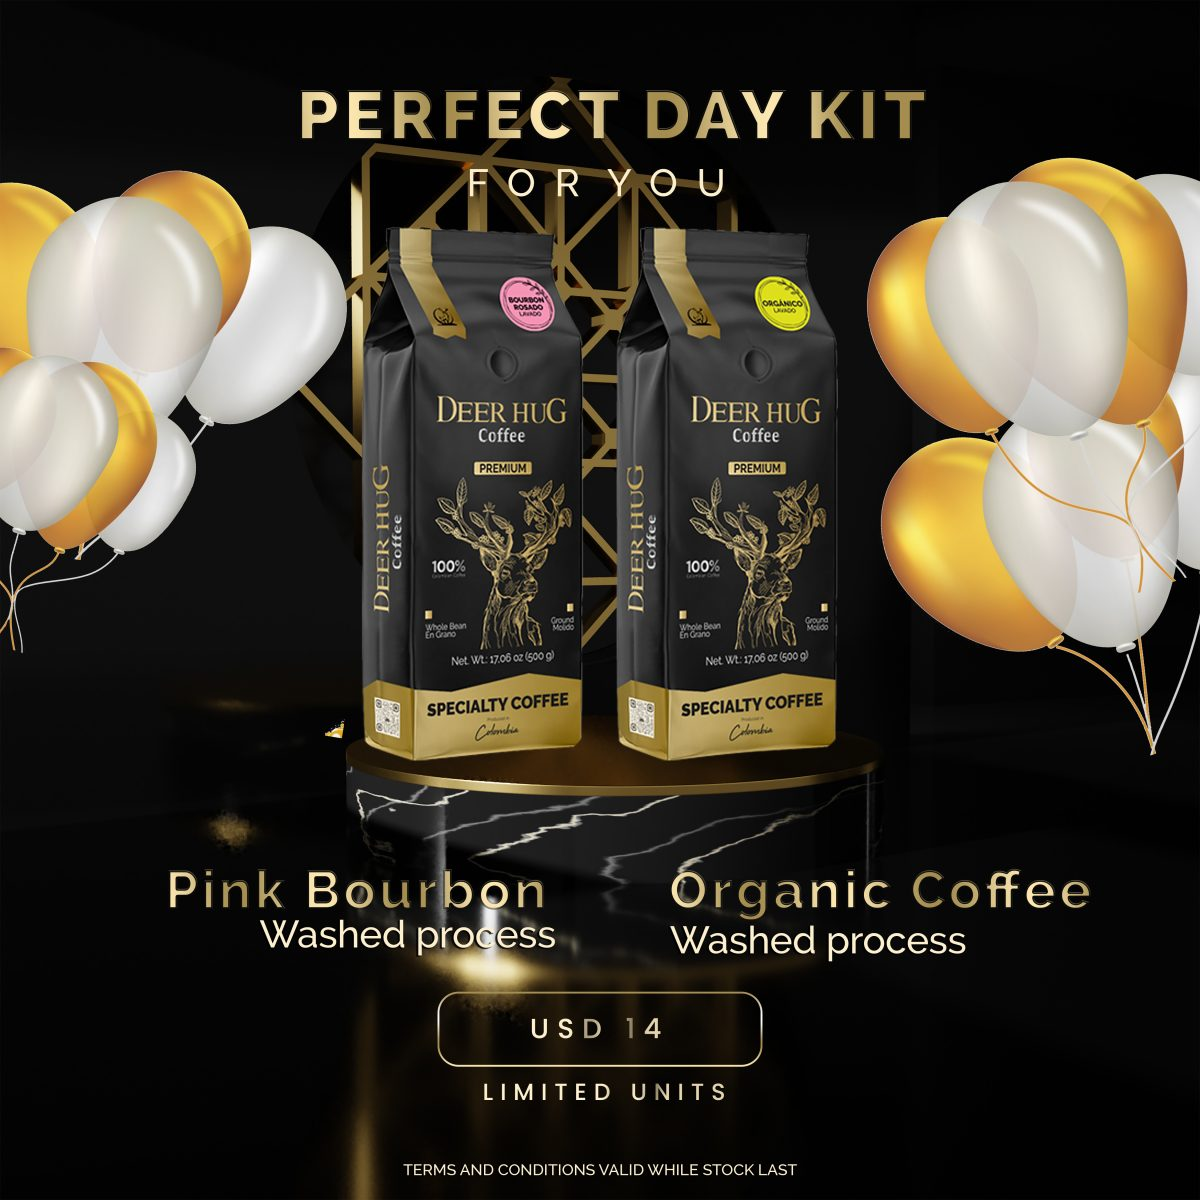 PERFECT DAY KIT